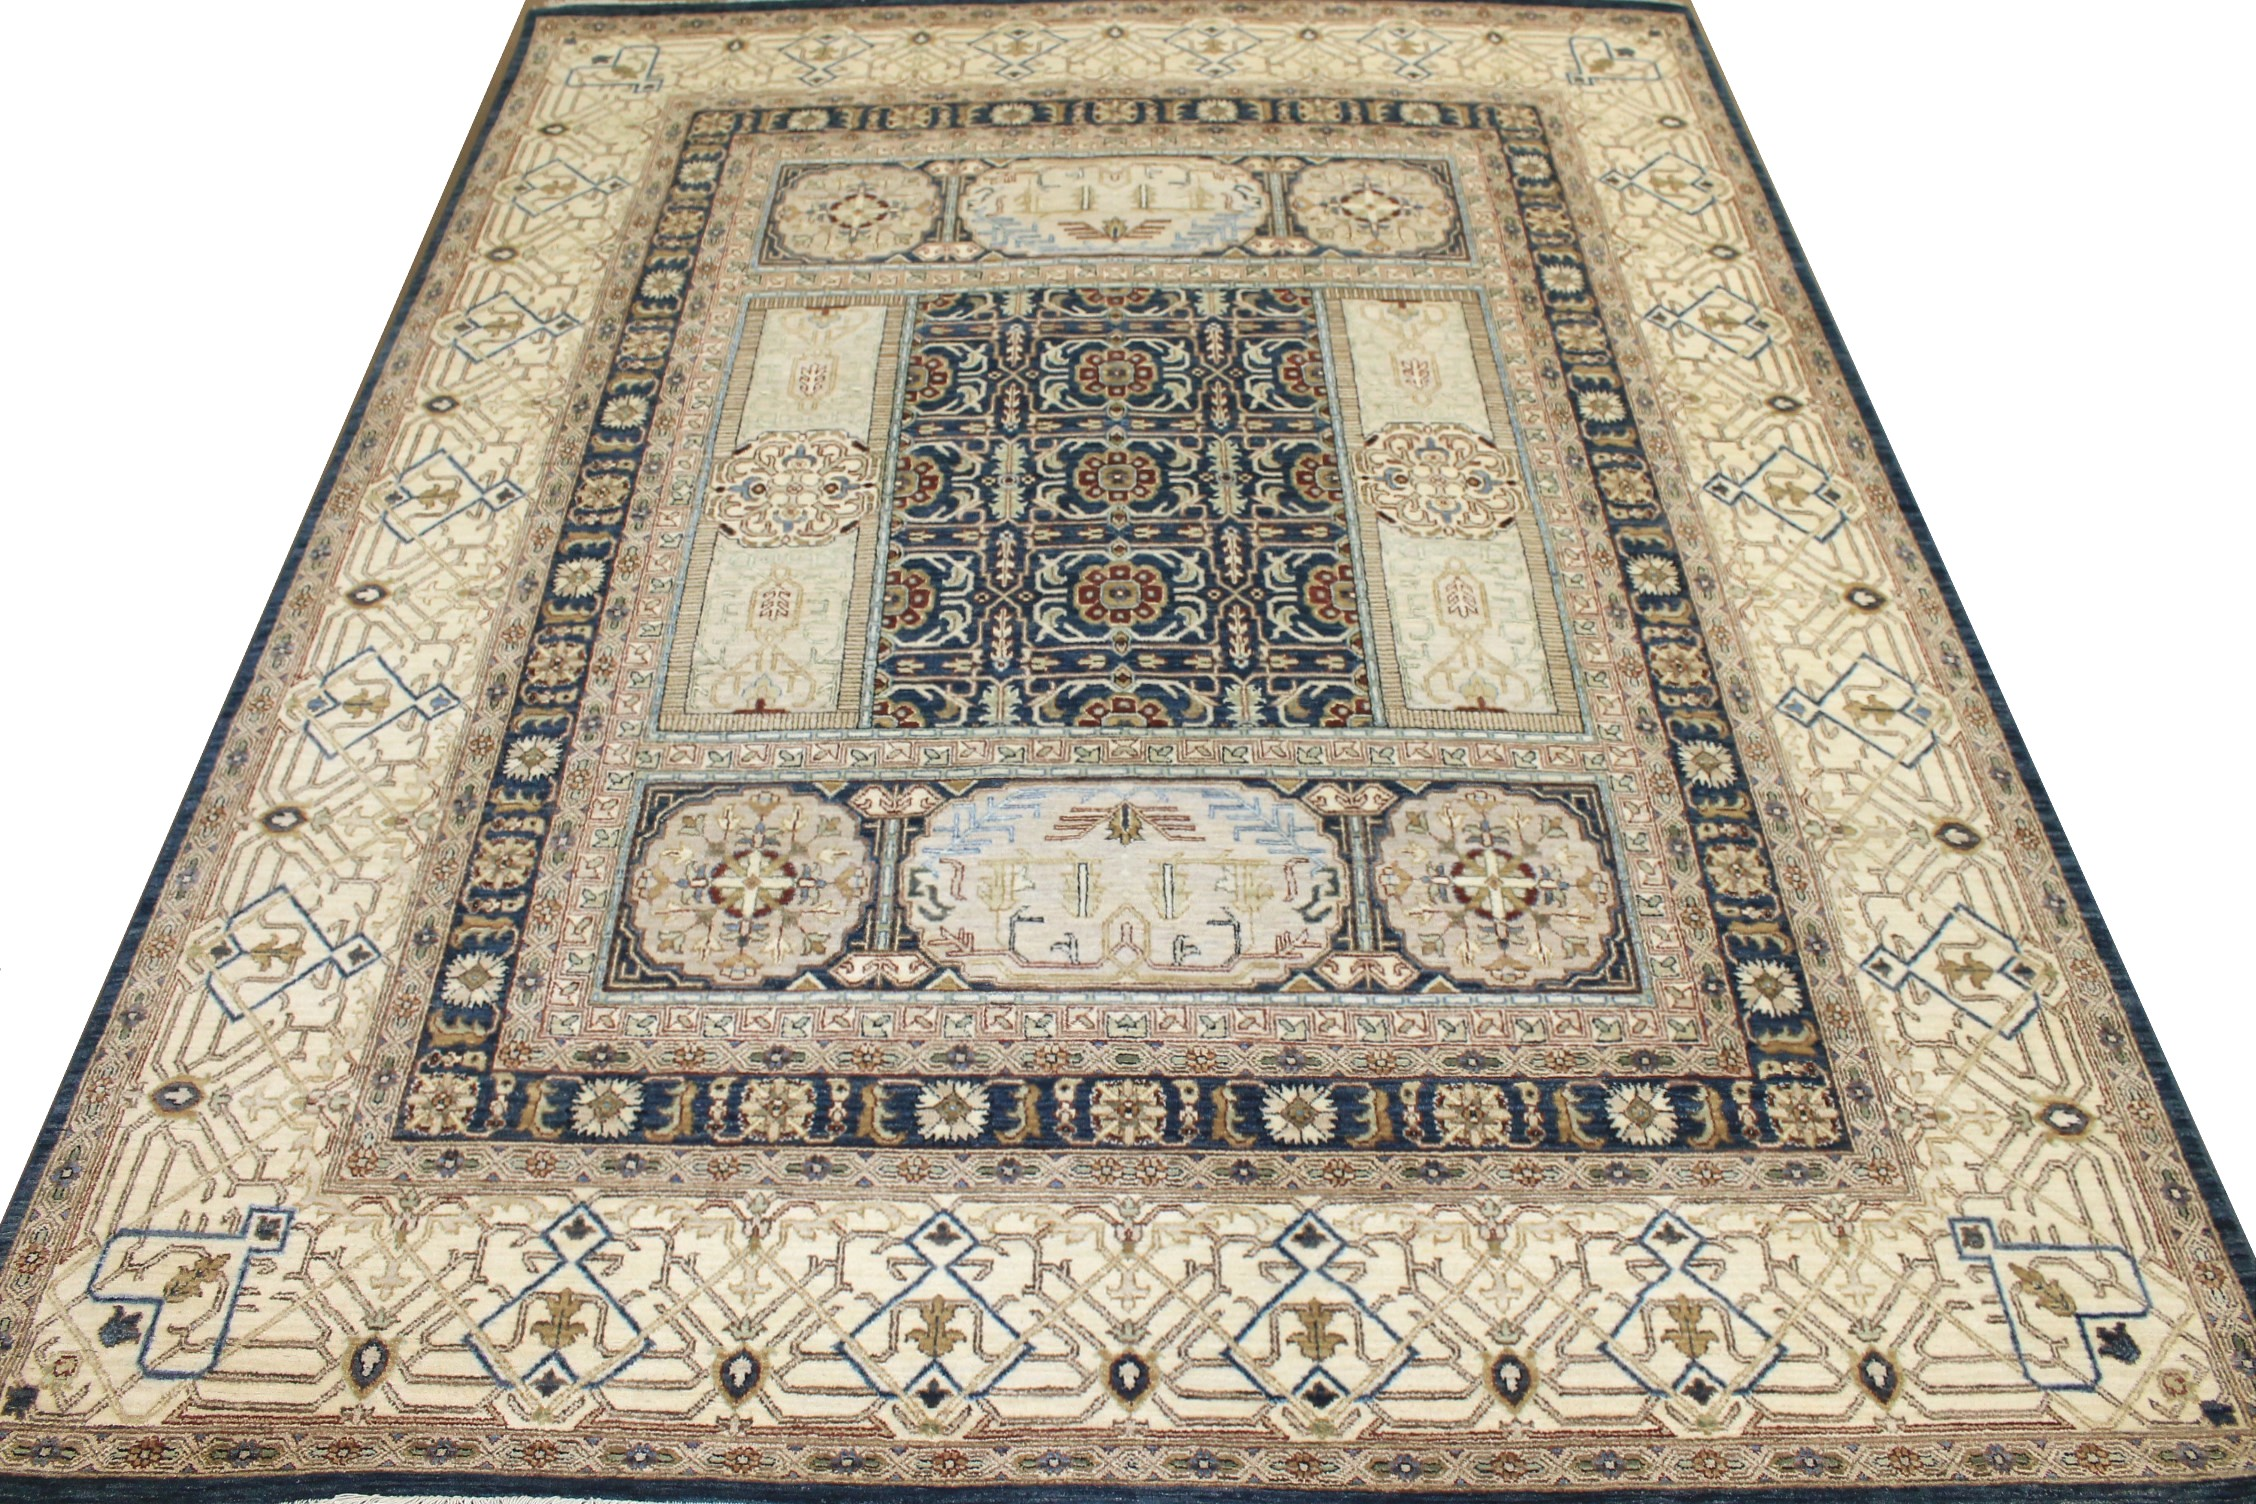 8x10 Oriental Hand Knotted Wool Area Rug - MR025463